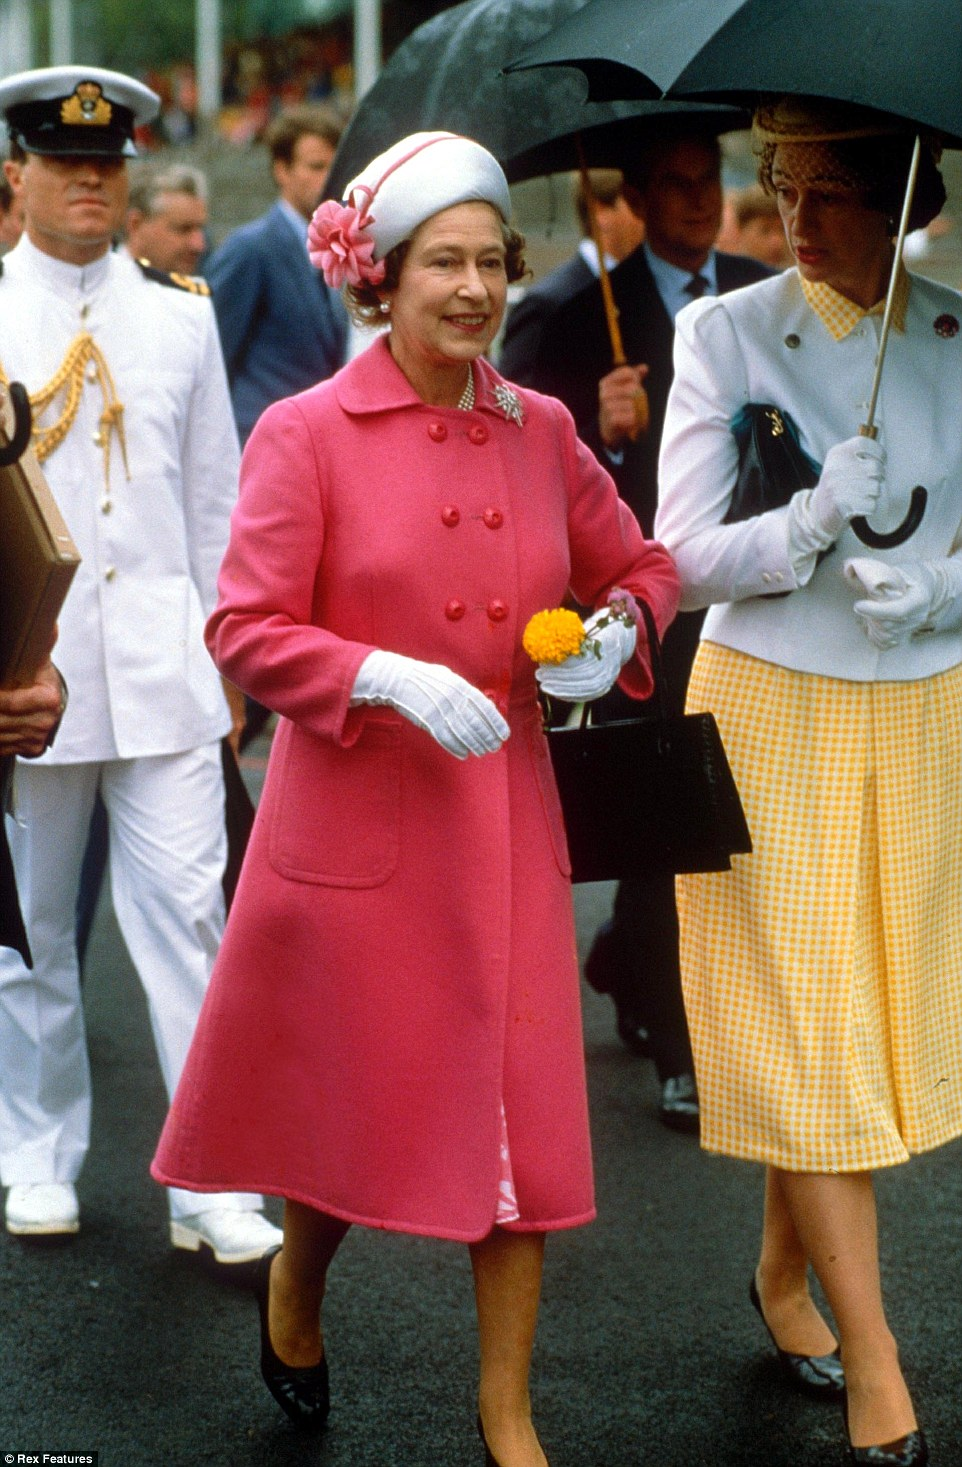 1986: Known for her love of bright colours, the Queen stands out in bright pink during a tour of New Zealand in 1986 with Prince Philip